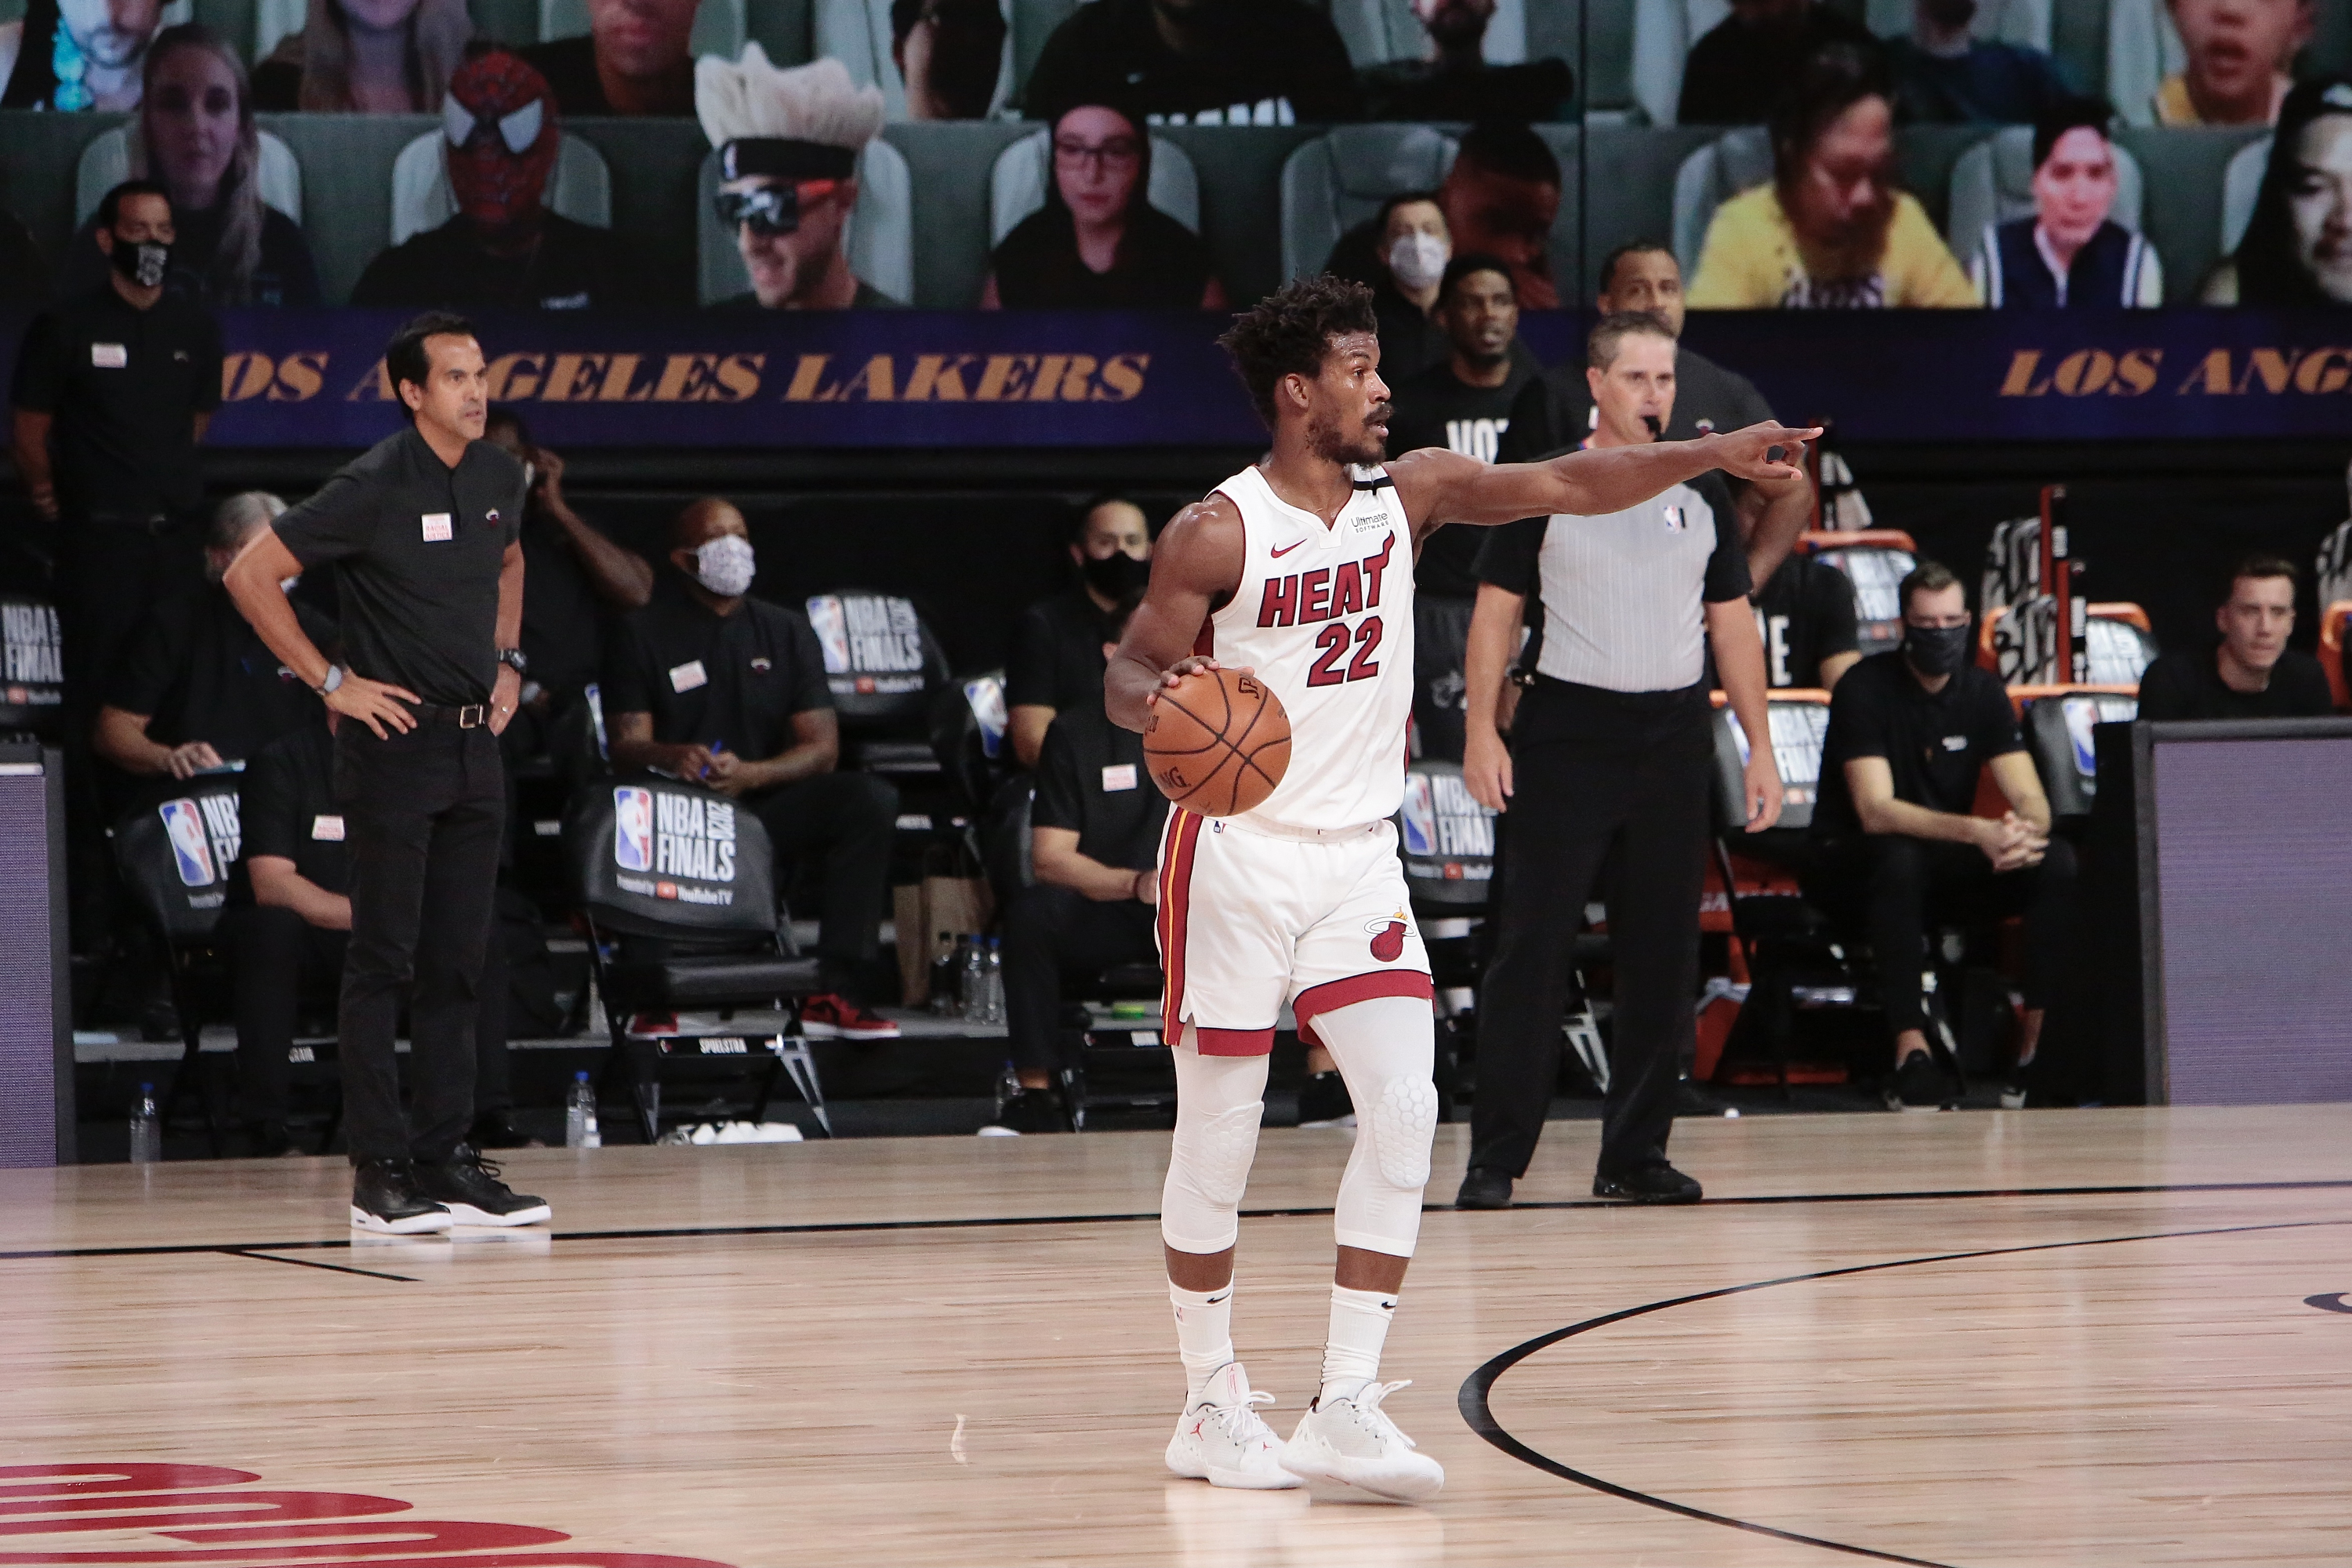 Miami Heat v Los Angeles Lakers - Game Two